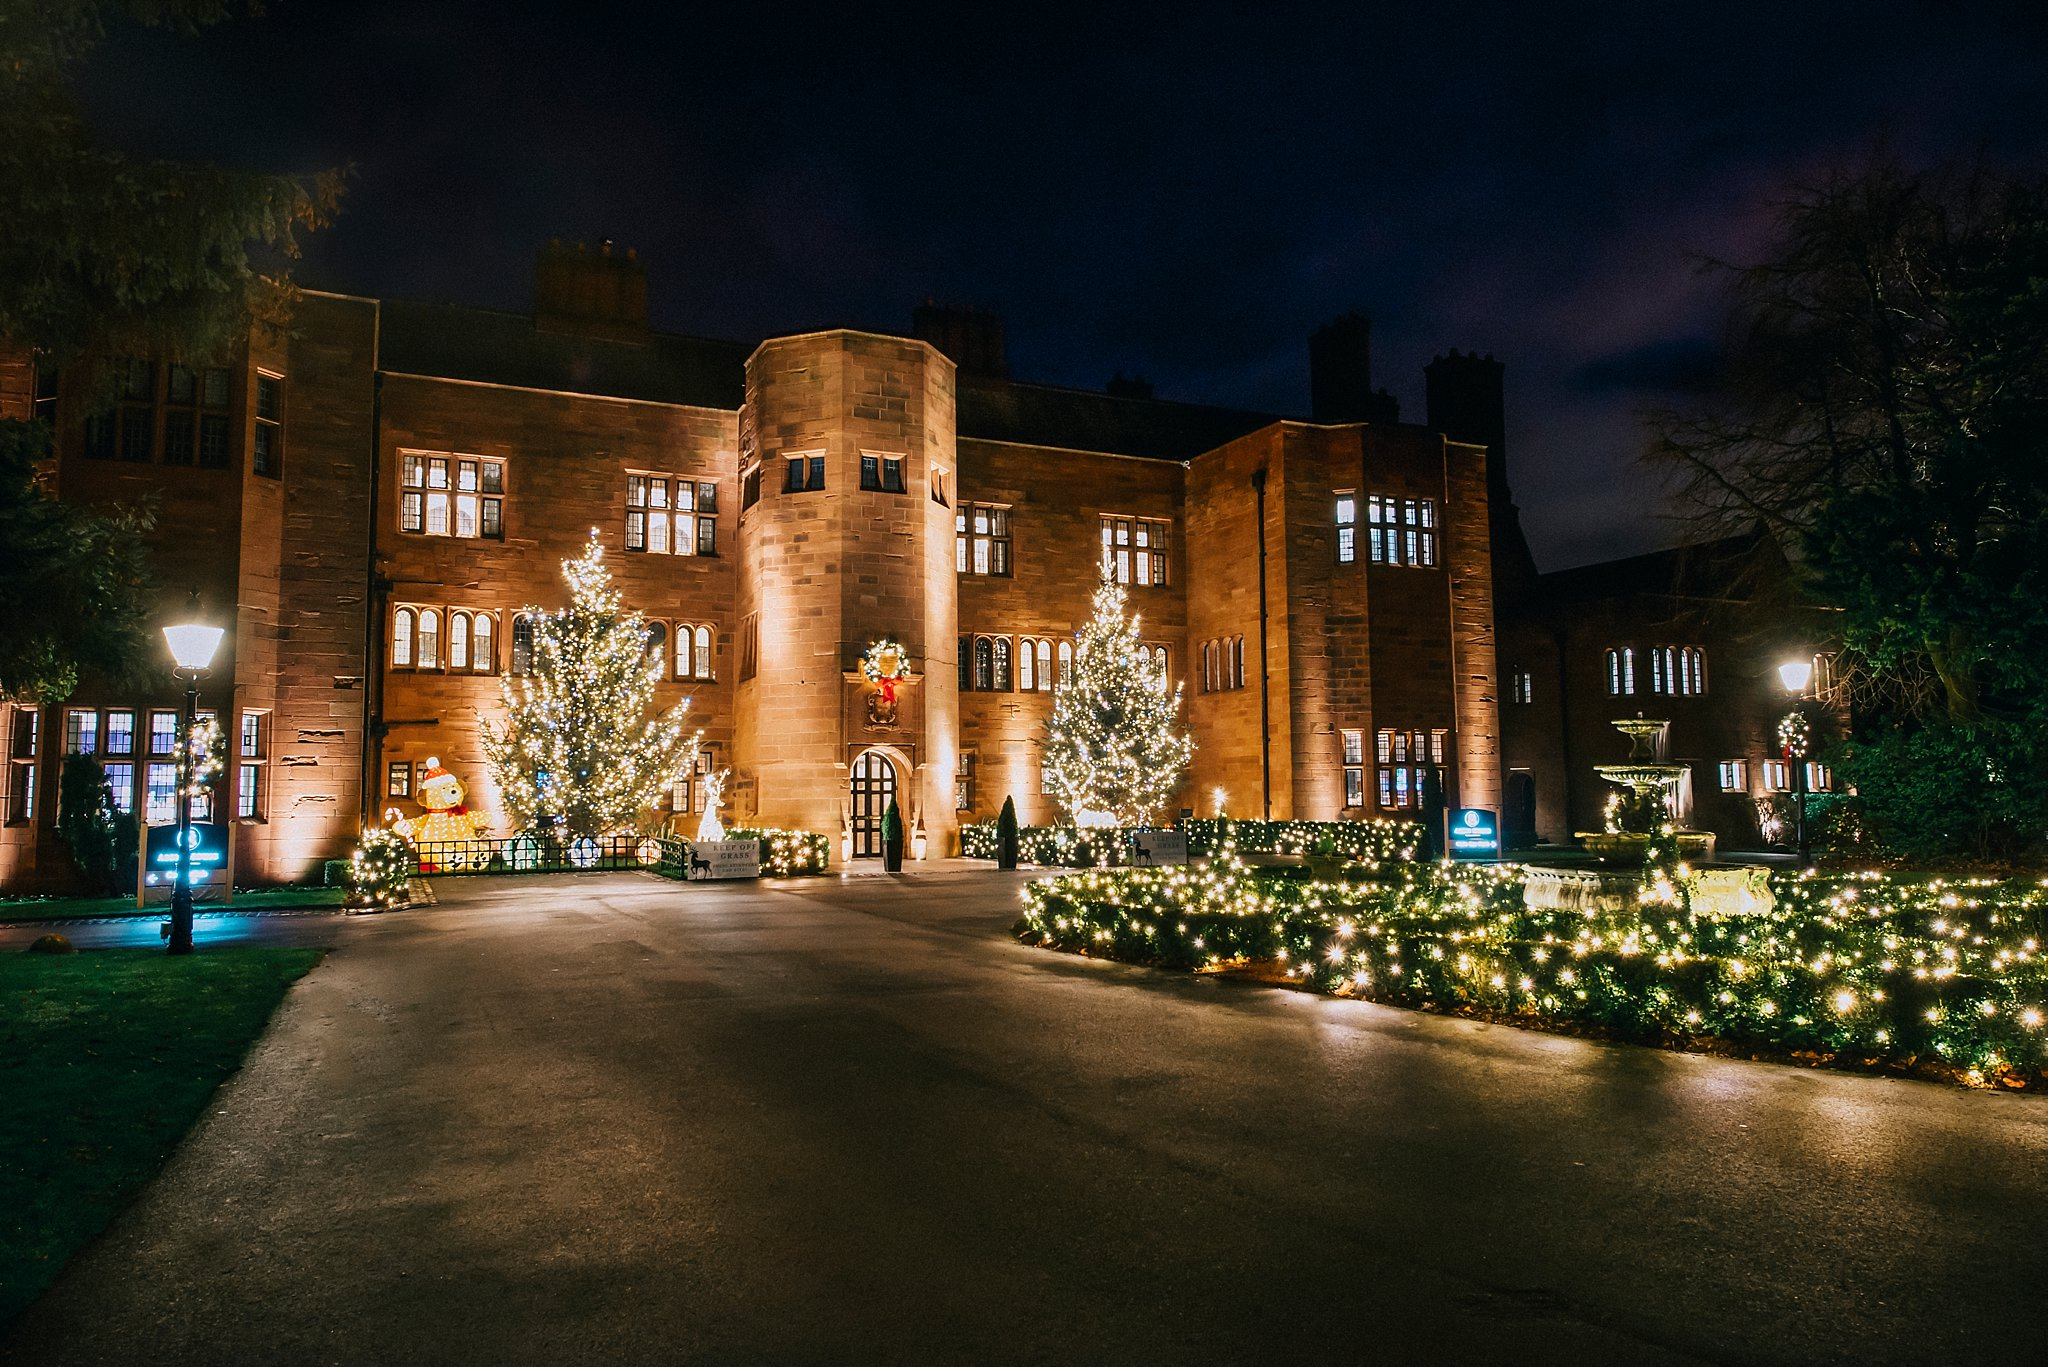 Abbey house hotel Christmas lights